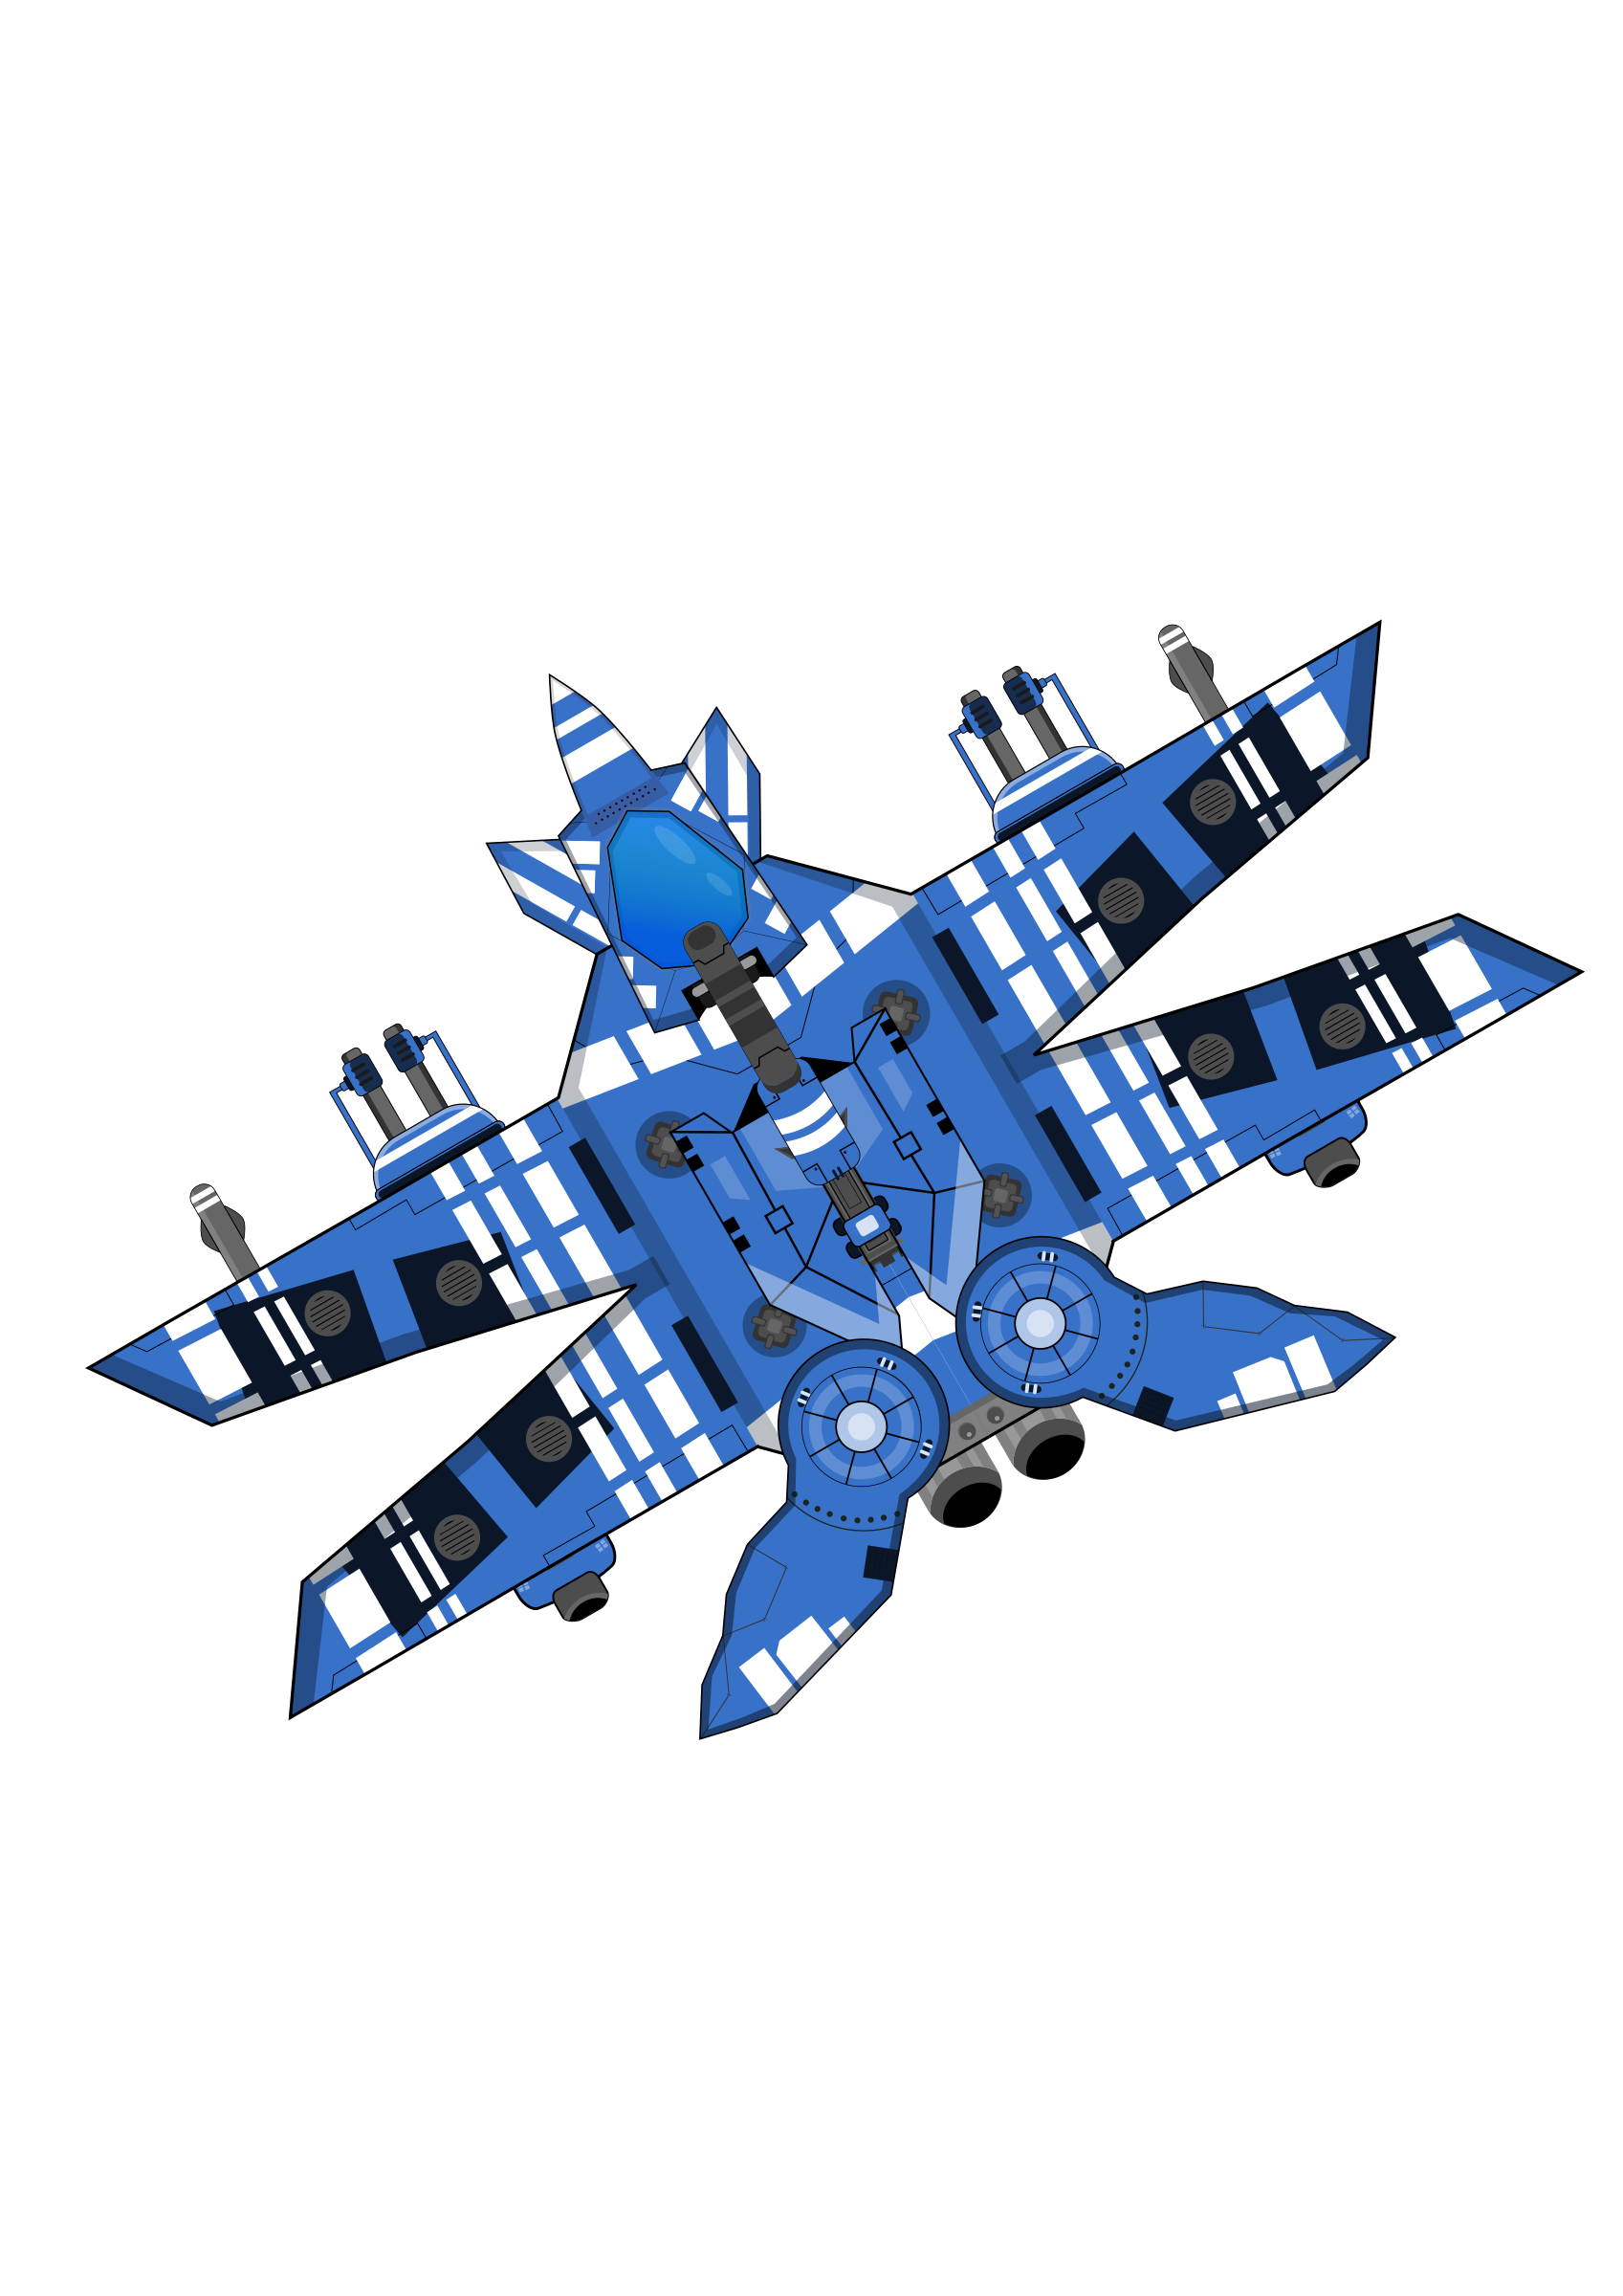 Big image png. Spaceship clipart blue clip art black and white library